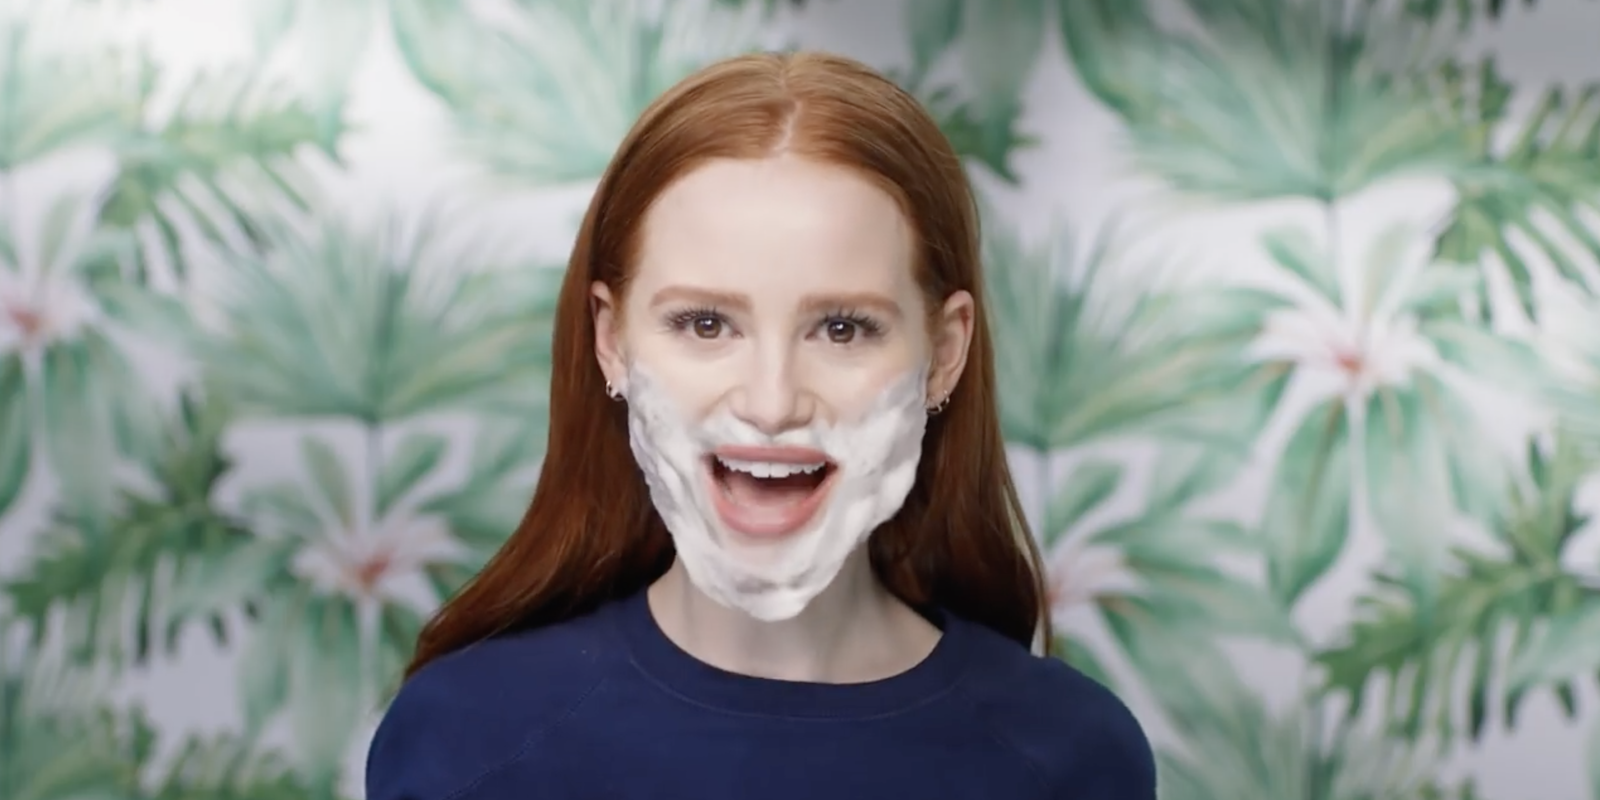 FRIDAY OPEN THREAD: I Need Help, Tell Me All About Your Skin